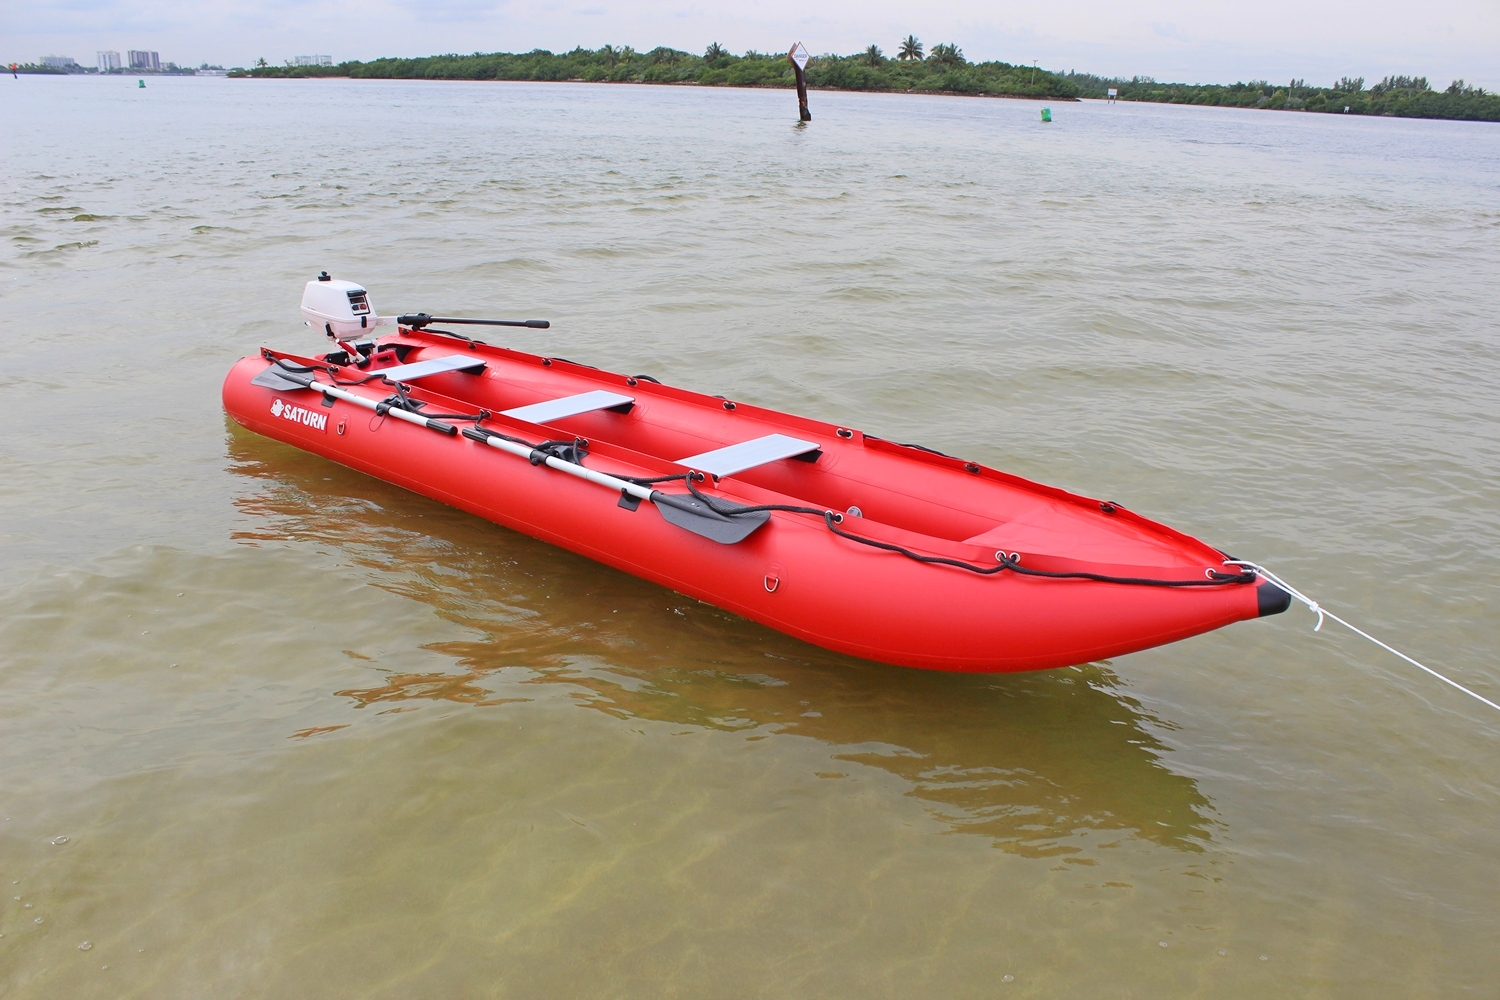 15 39 inflatable kayak inflatable boat crossover kaboat for Outboard motor for canoe